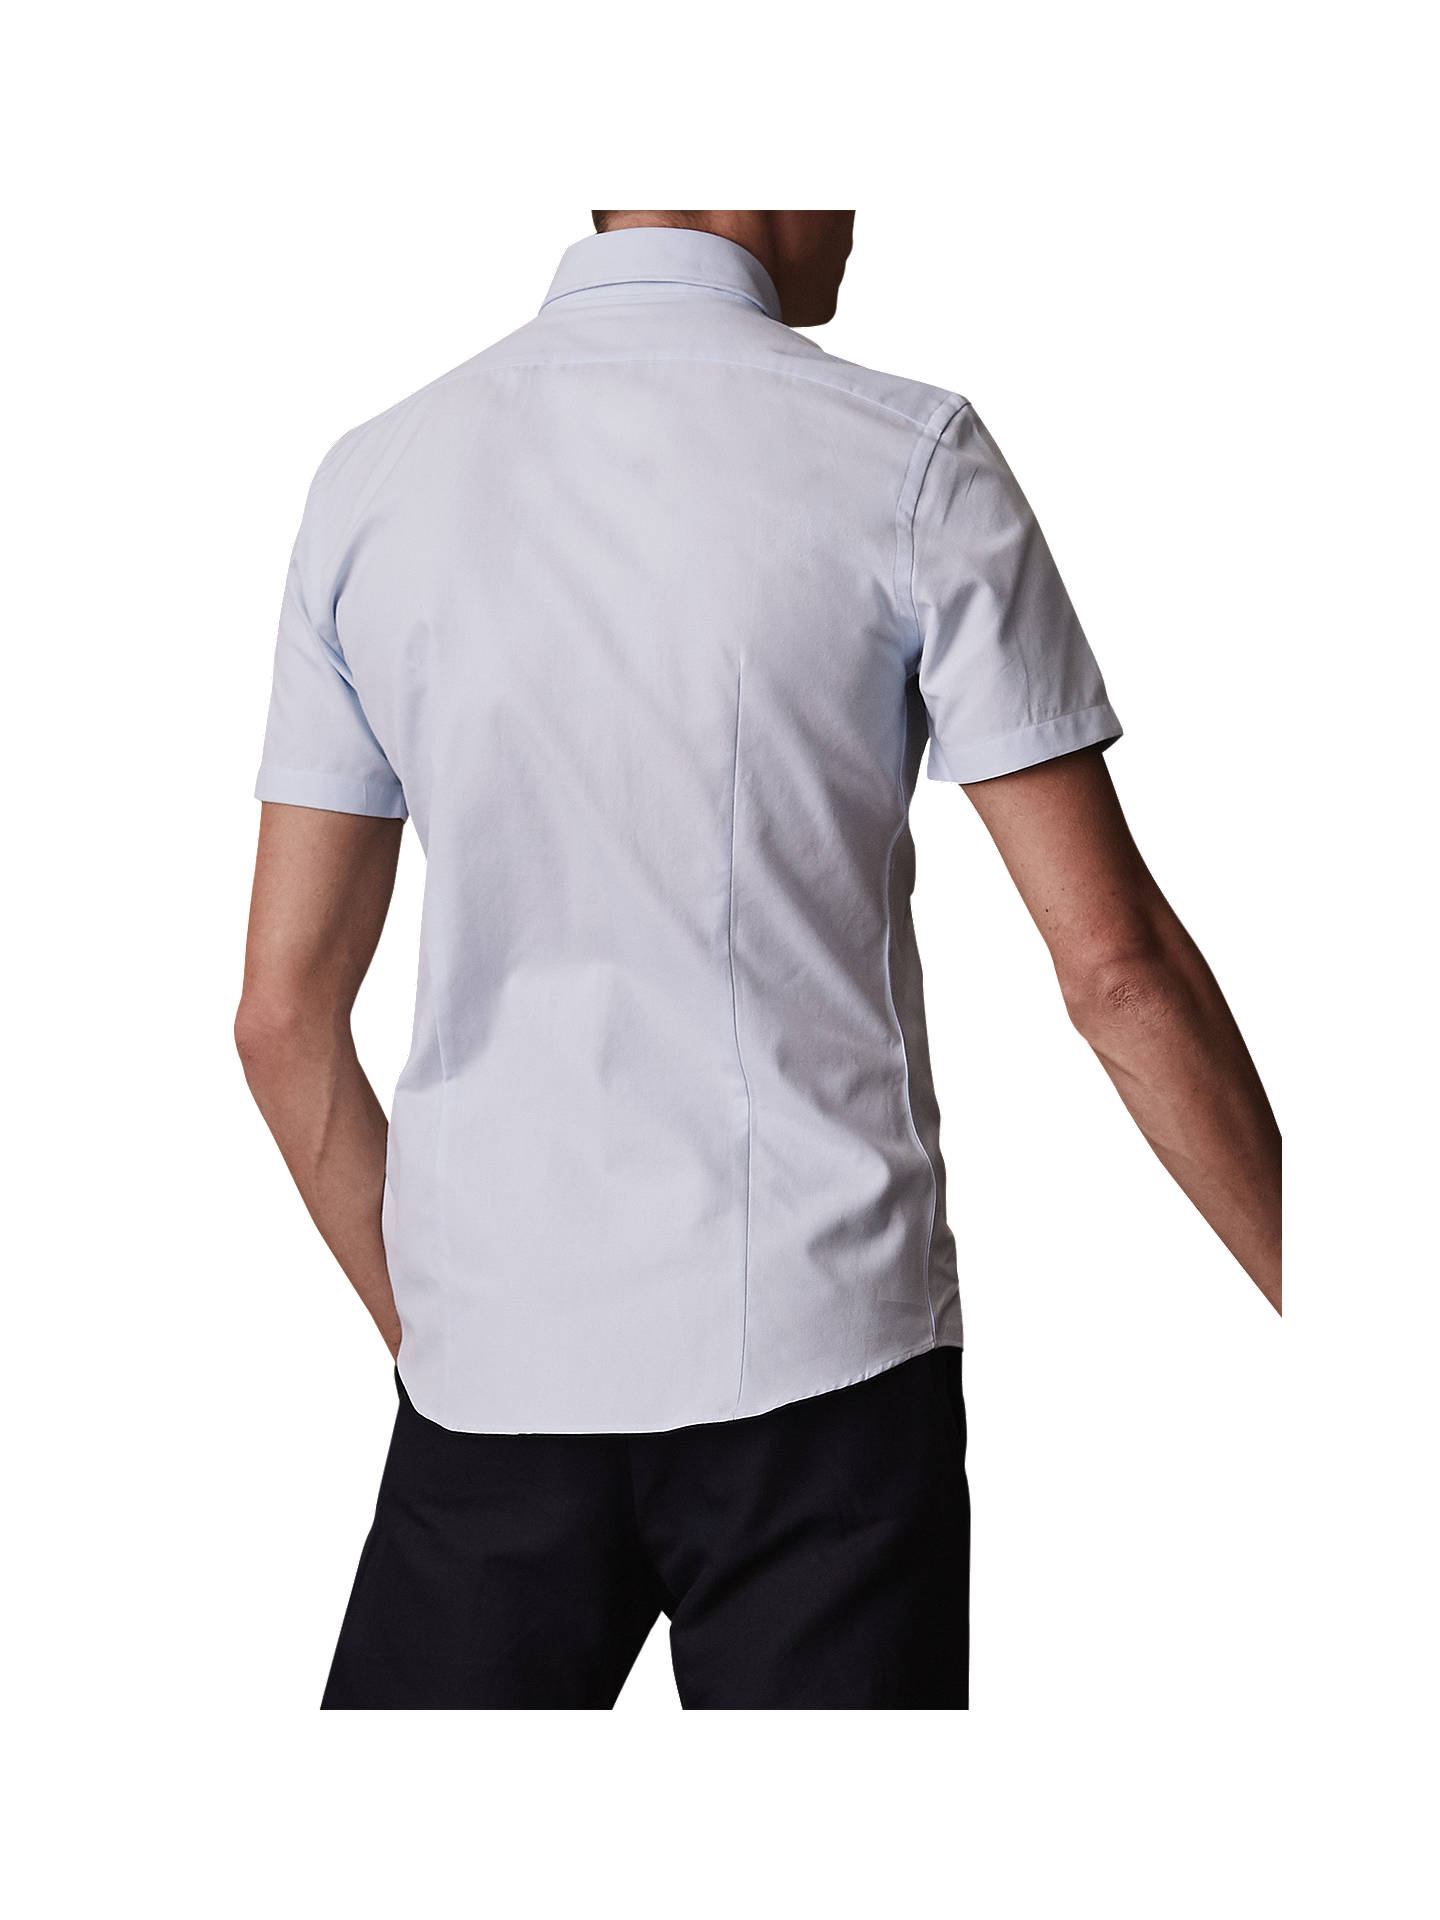 BuyReiss Dunning Short Sleeve Oxford Shirt, Soft Blue, S Online at johnlewis.com